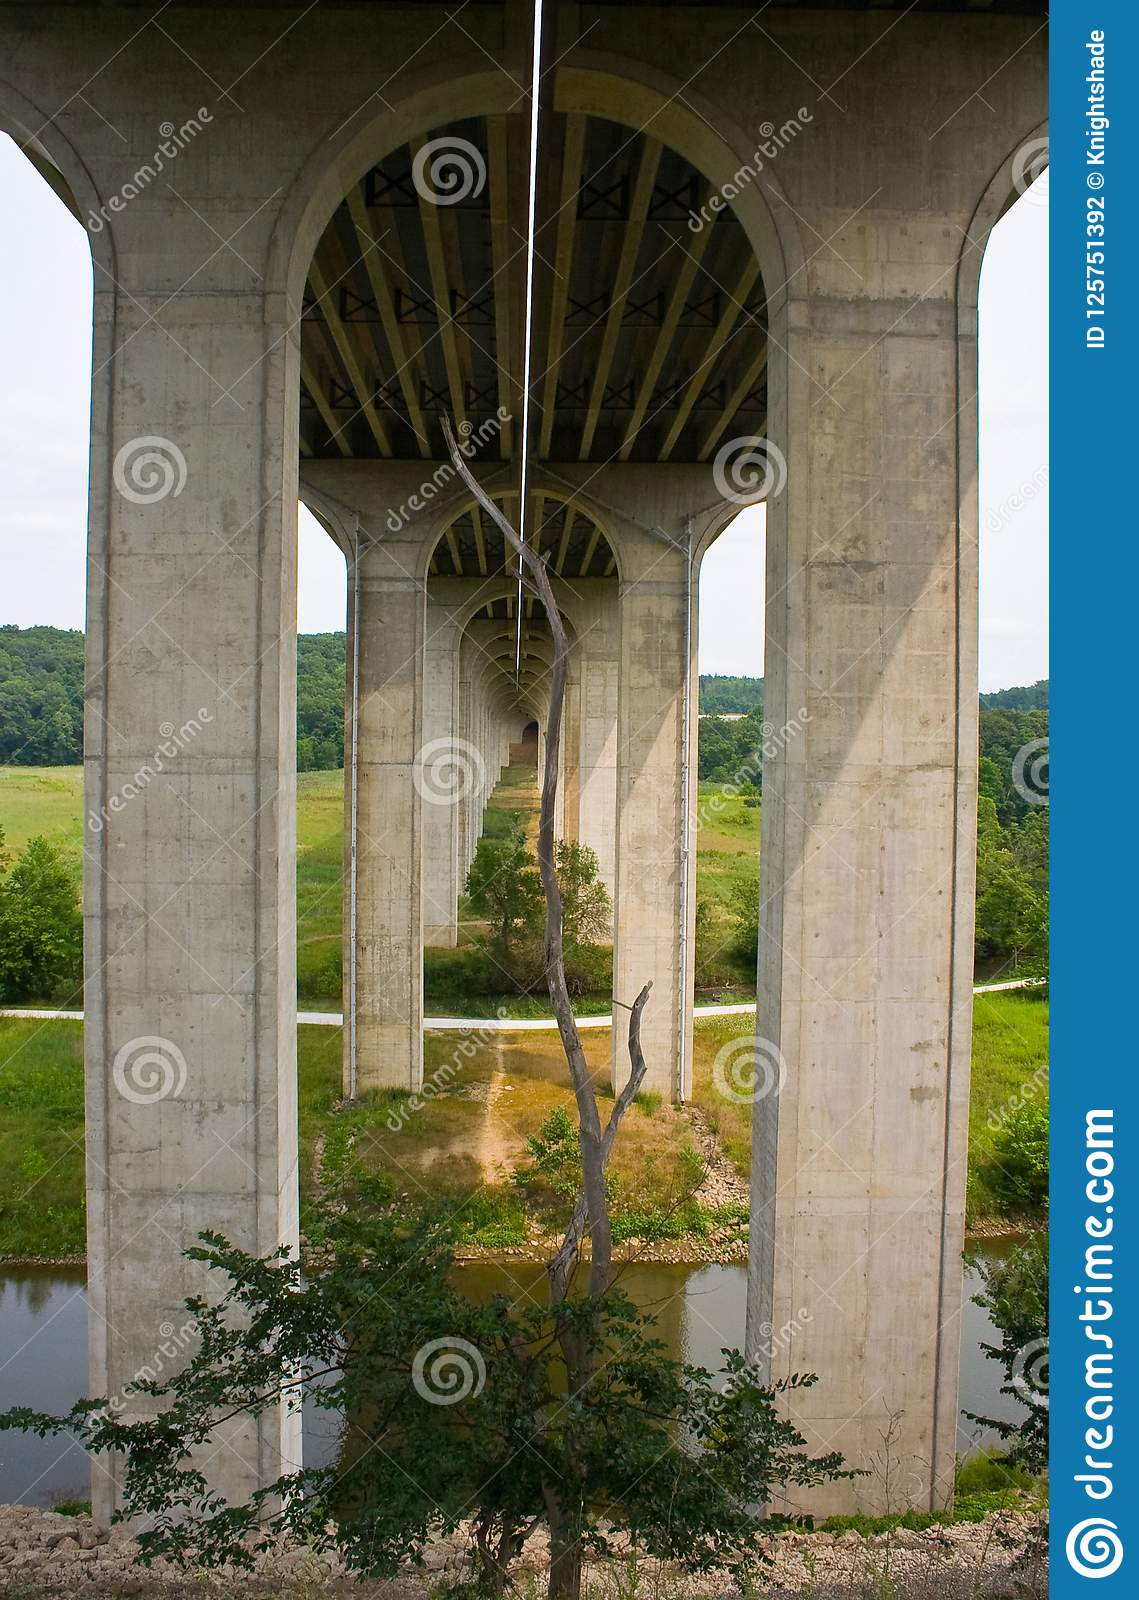 Bridge On Interstate 80 Near Cleveland, Ohio Stock Photo